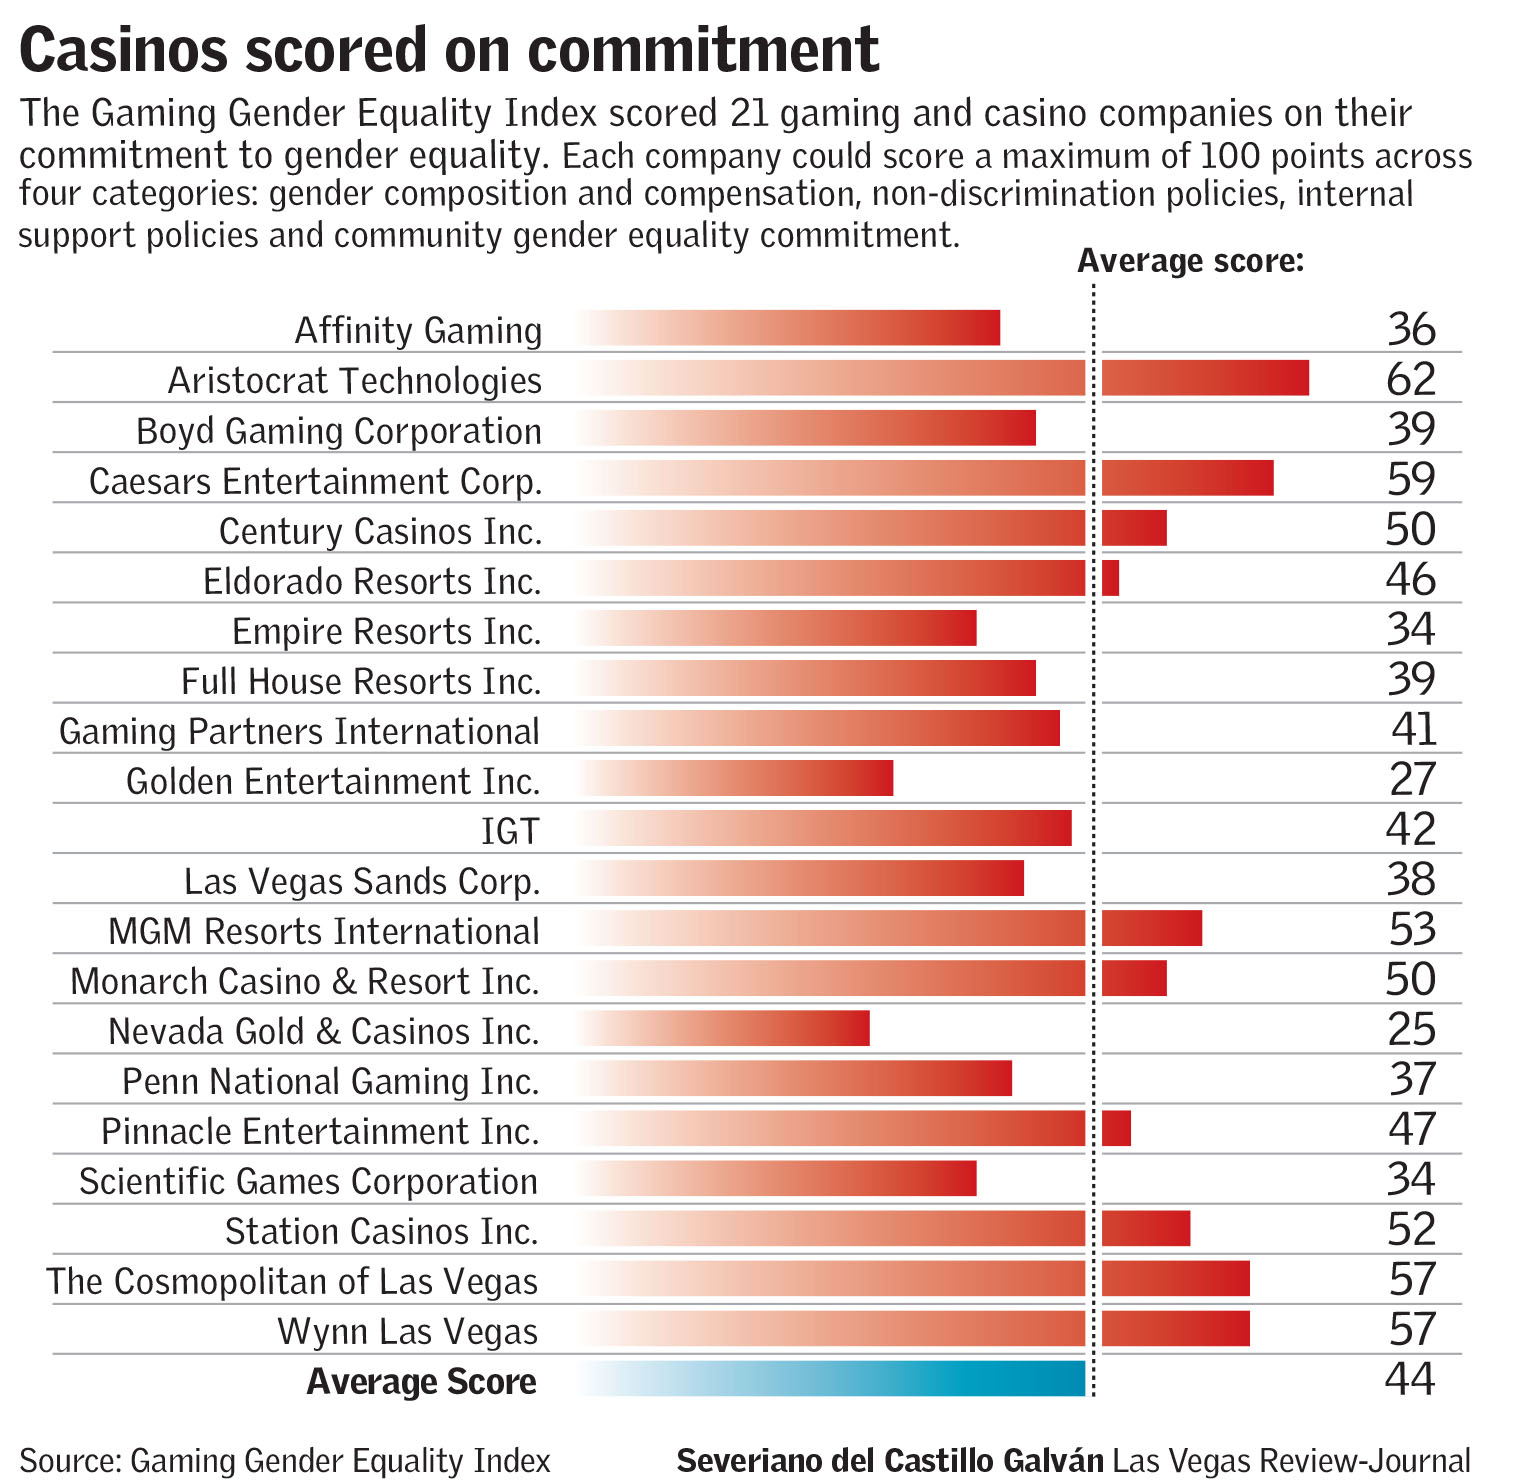 Casinos scored on commitment